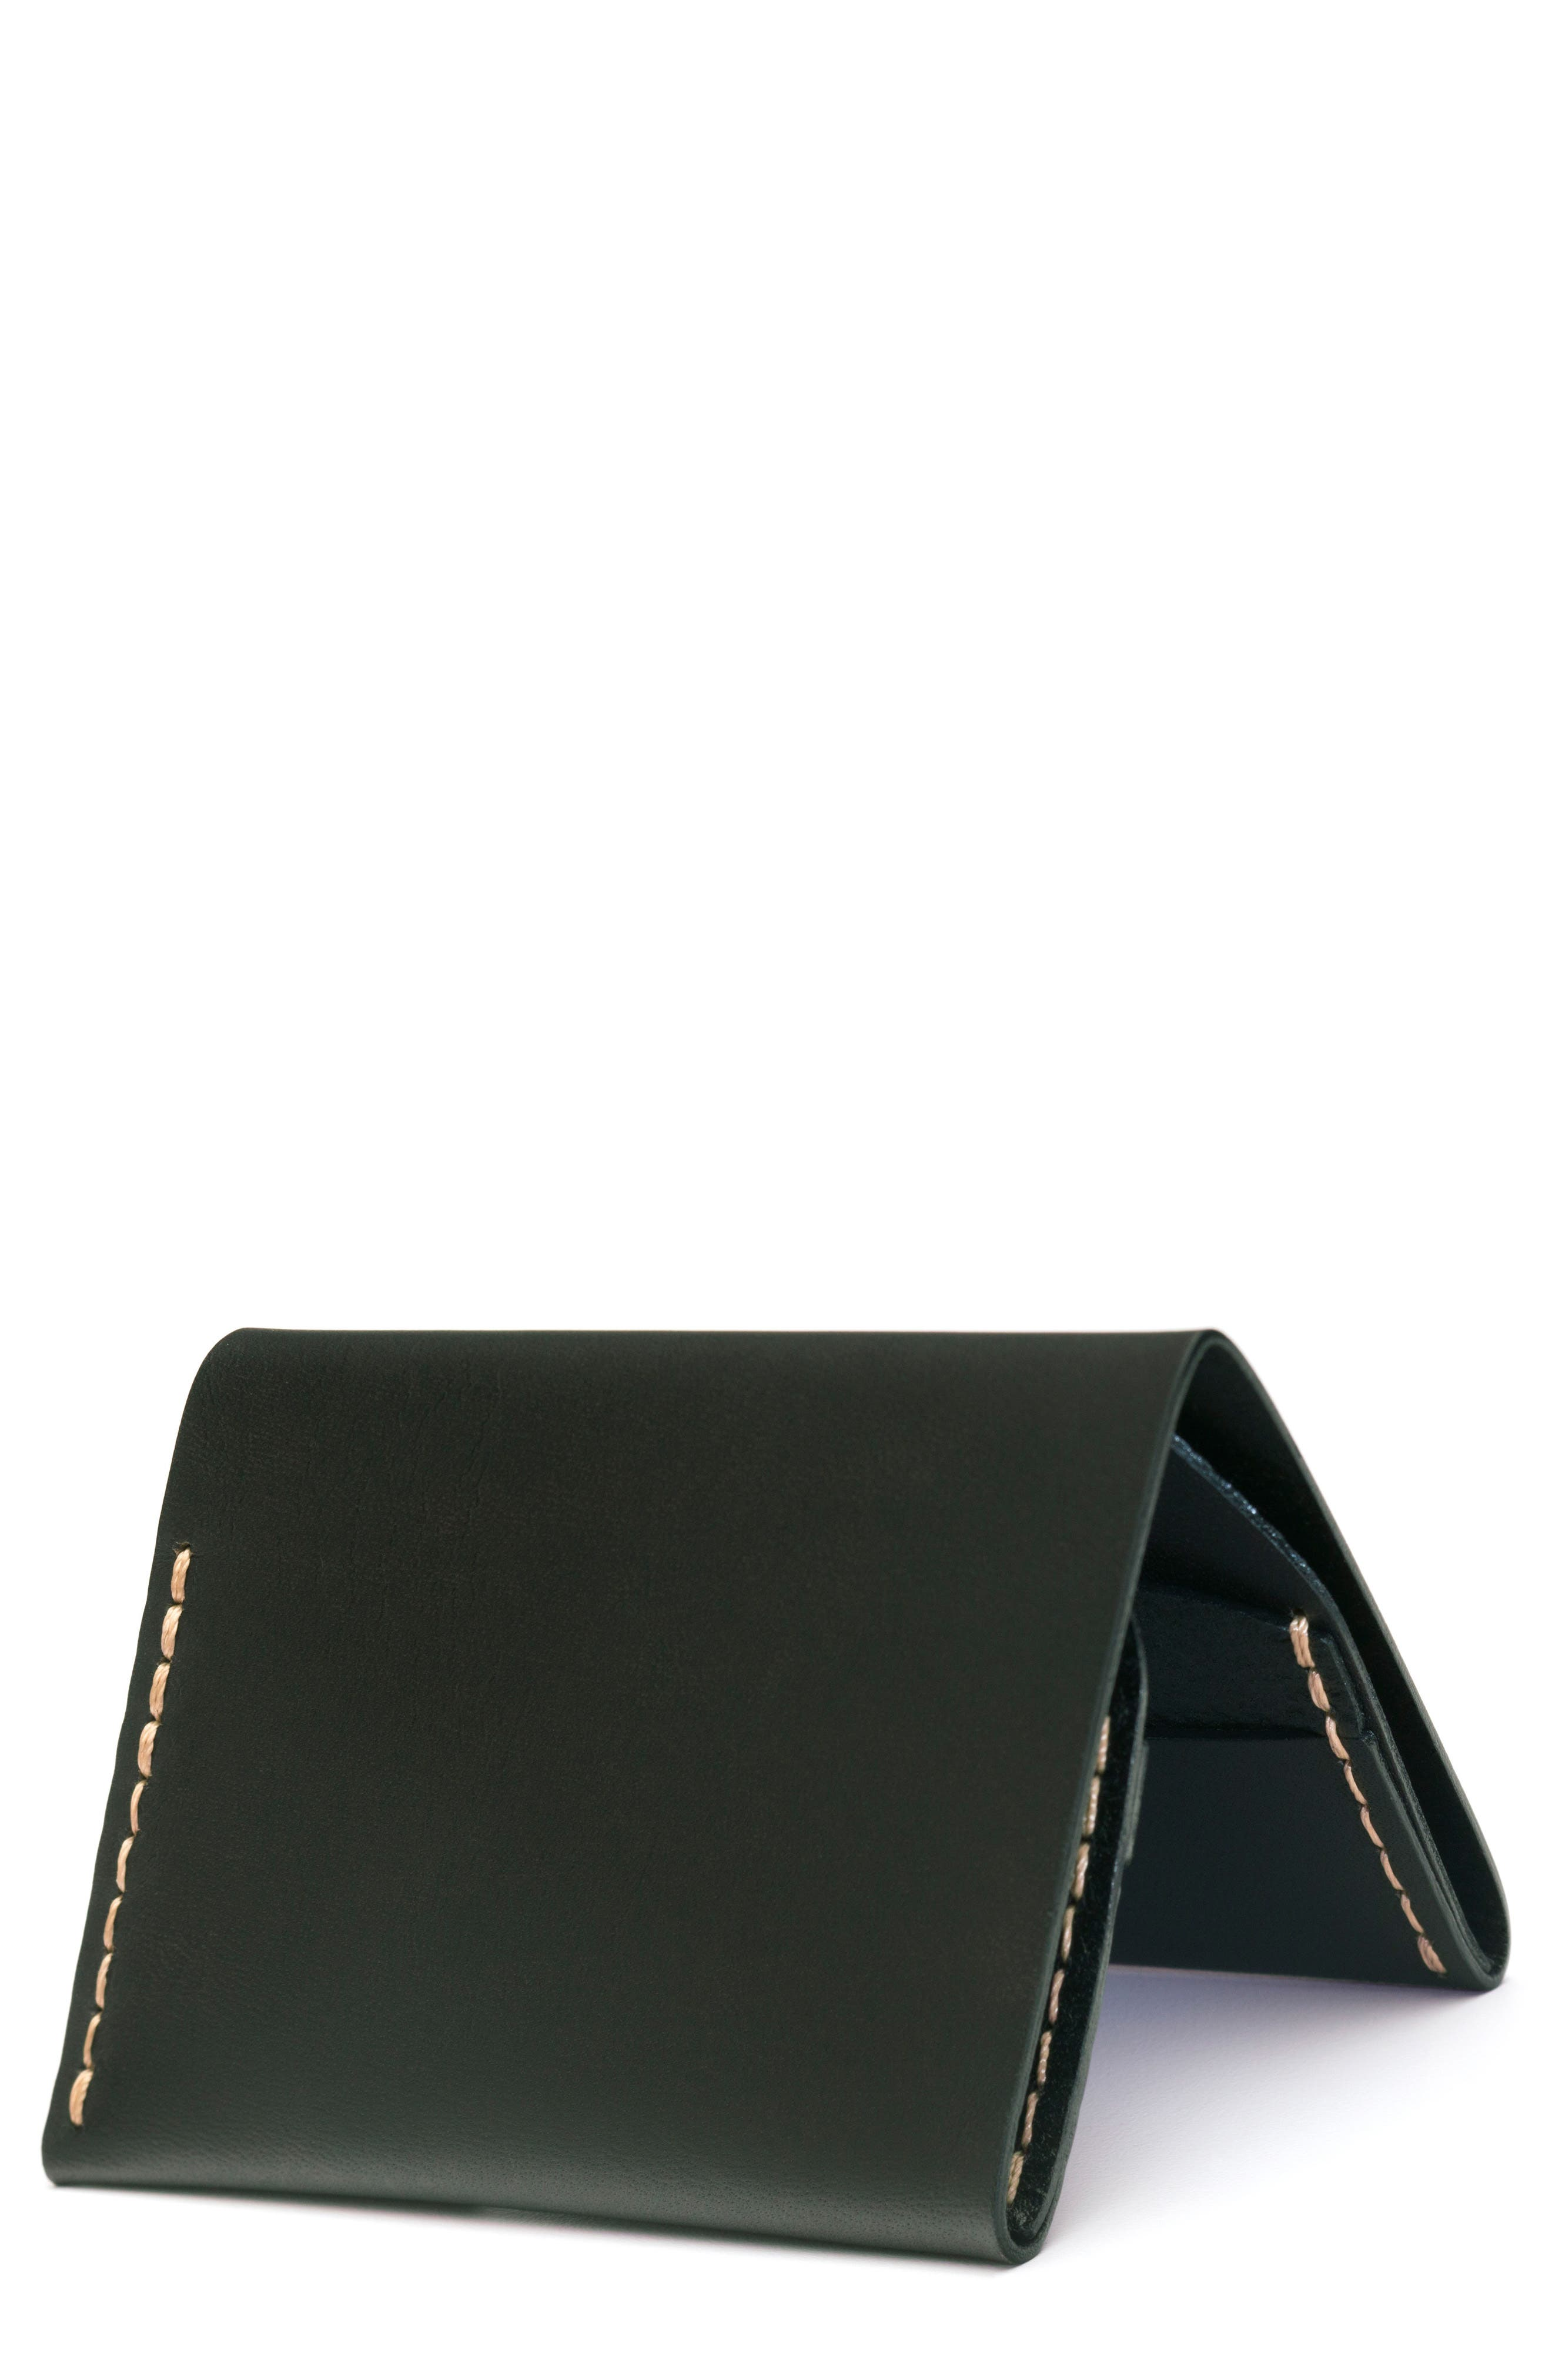 Alternate Image 1 Selected - Ezra Arthur No. 4 Leather Wallet